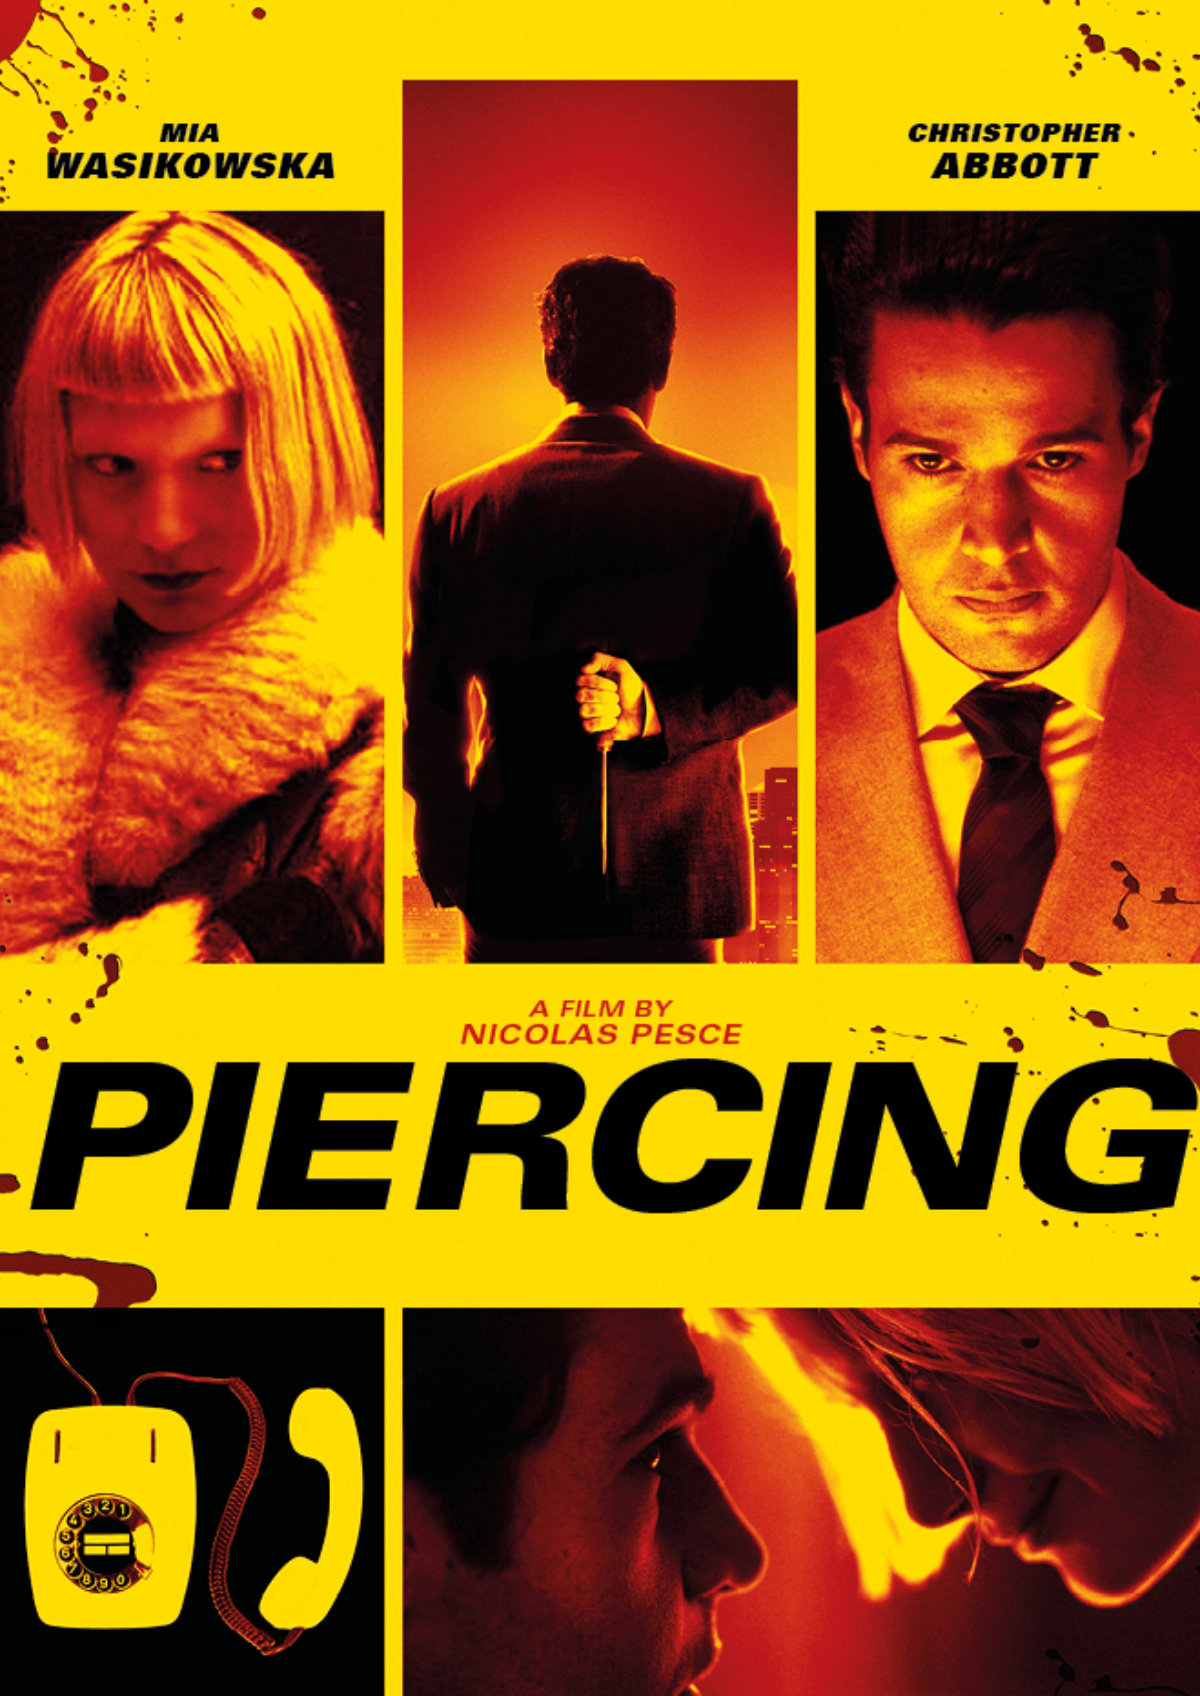 'Piercing' movie poster